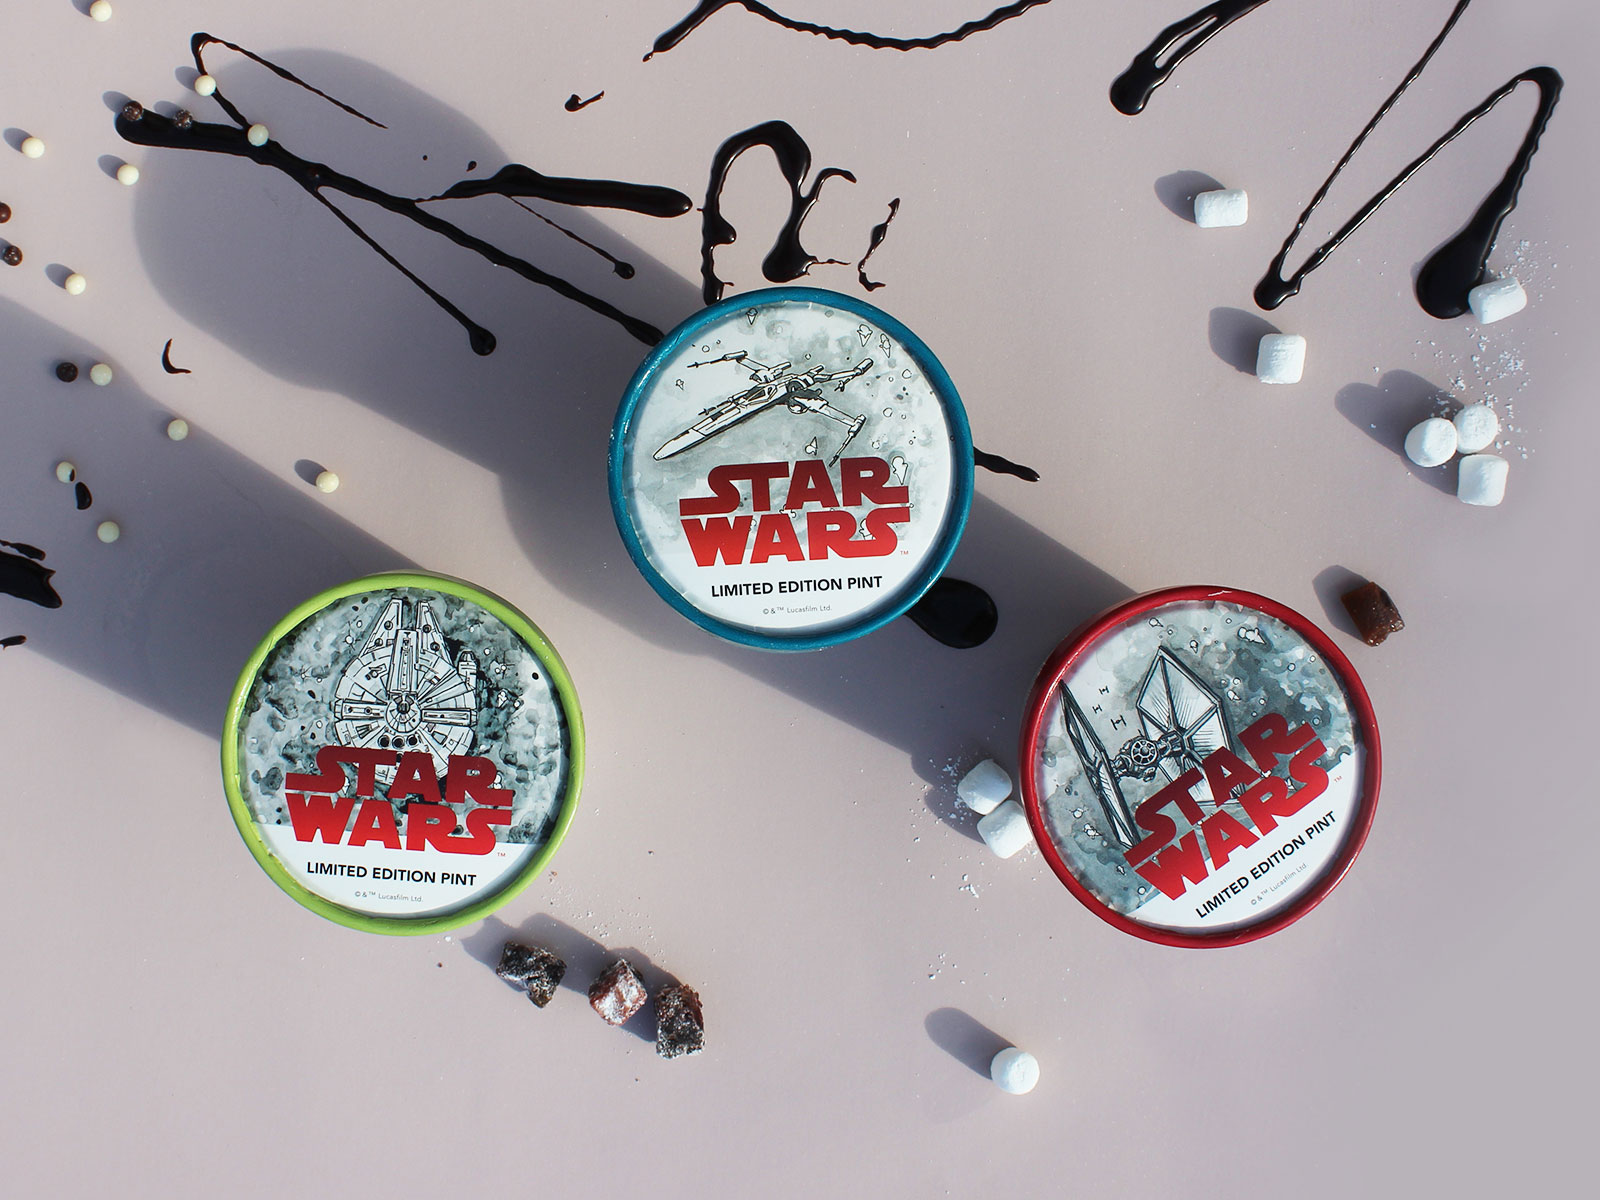 9 'Star Wars: The Last Jedi' Food Products Available in This Galaxy